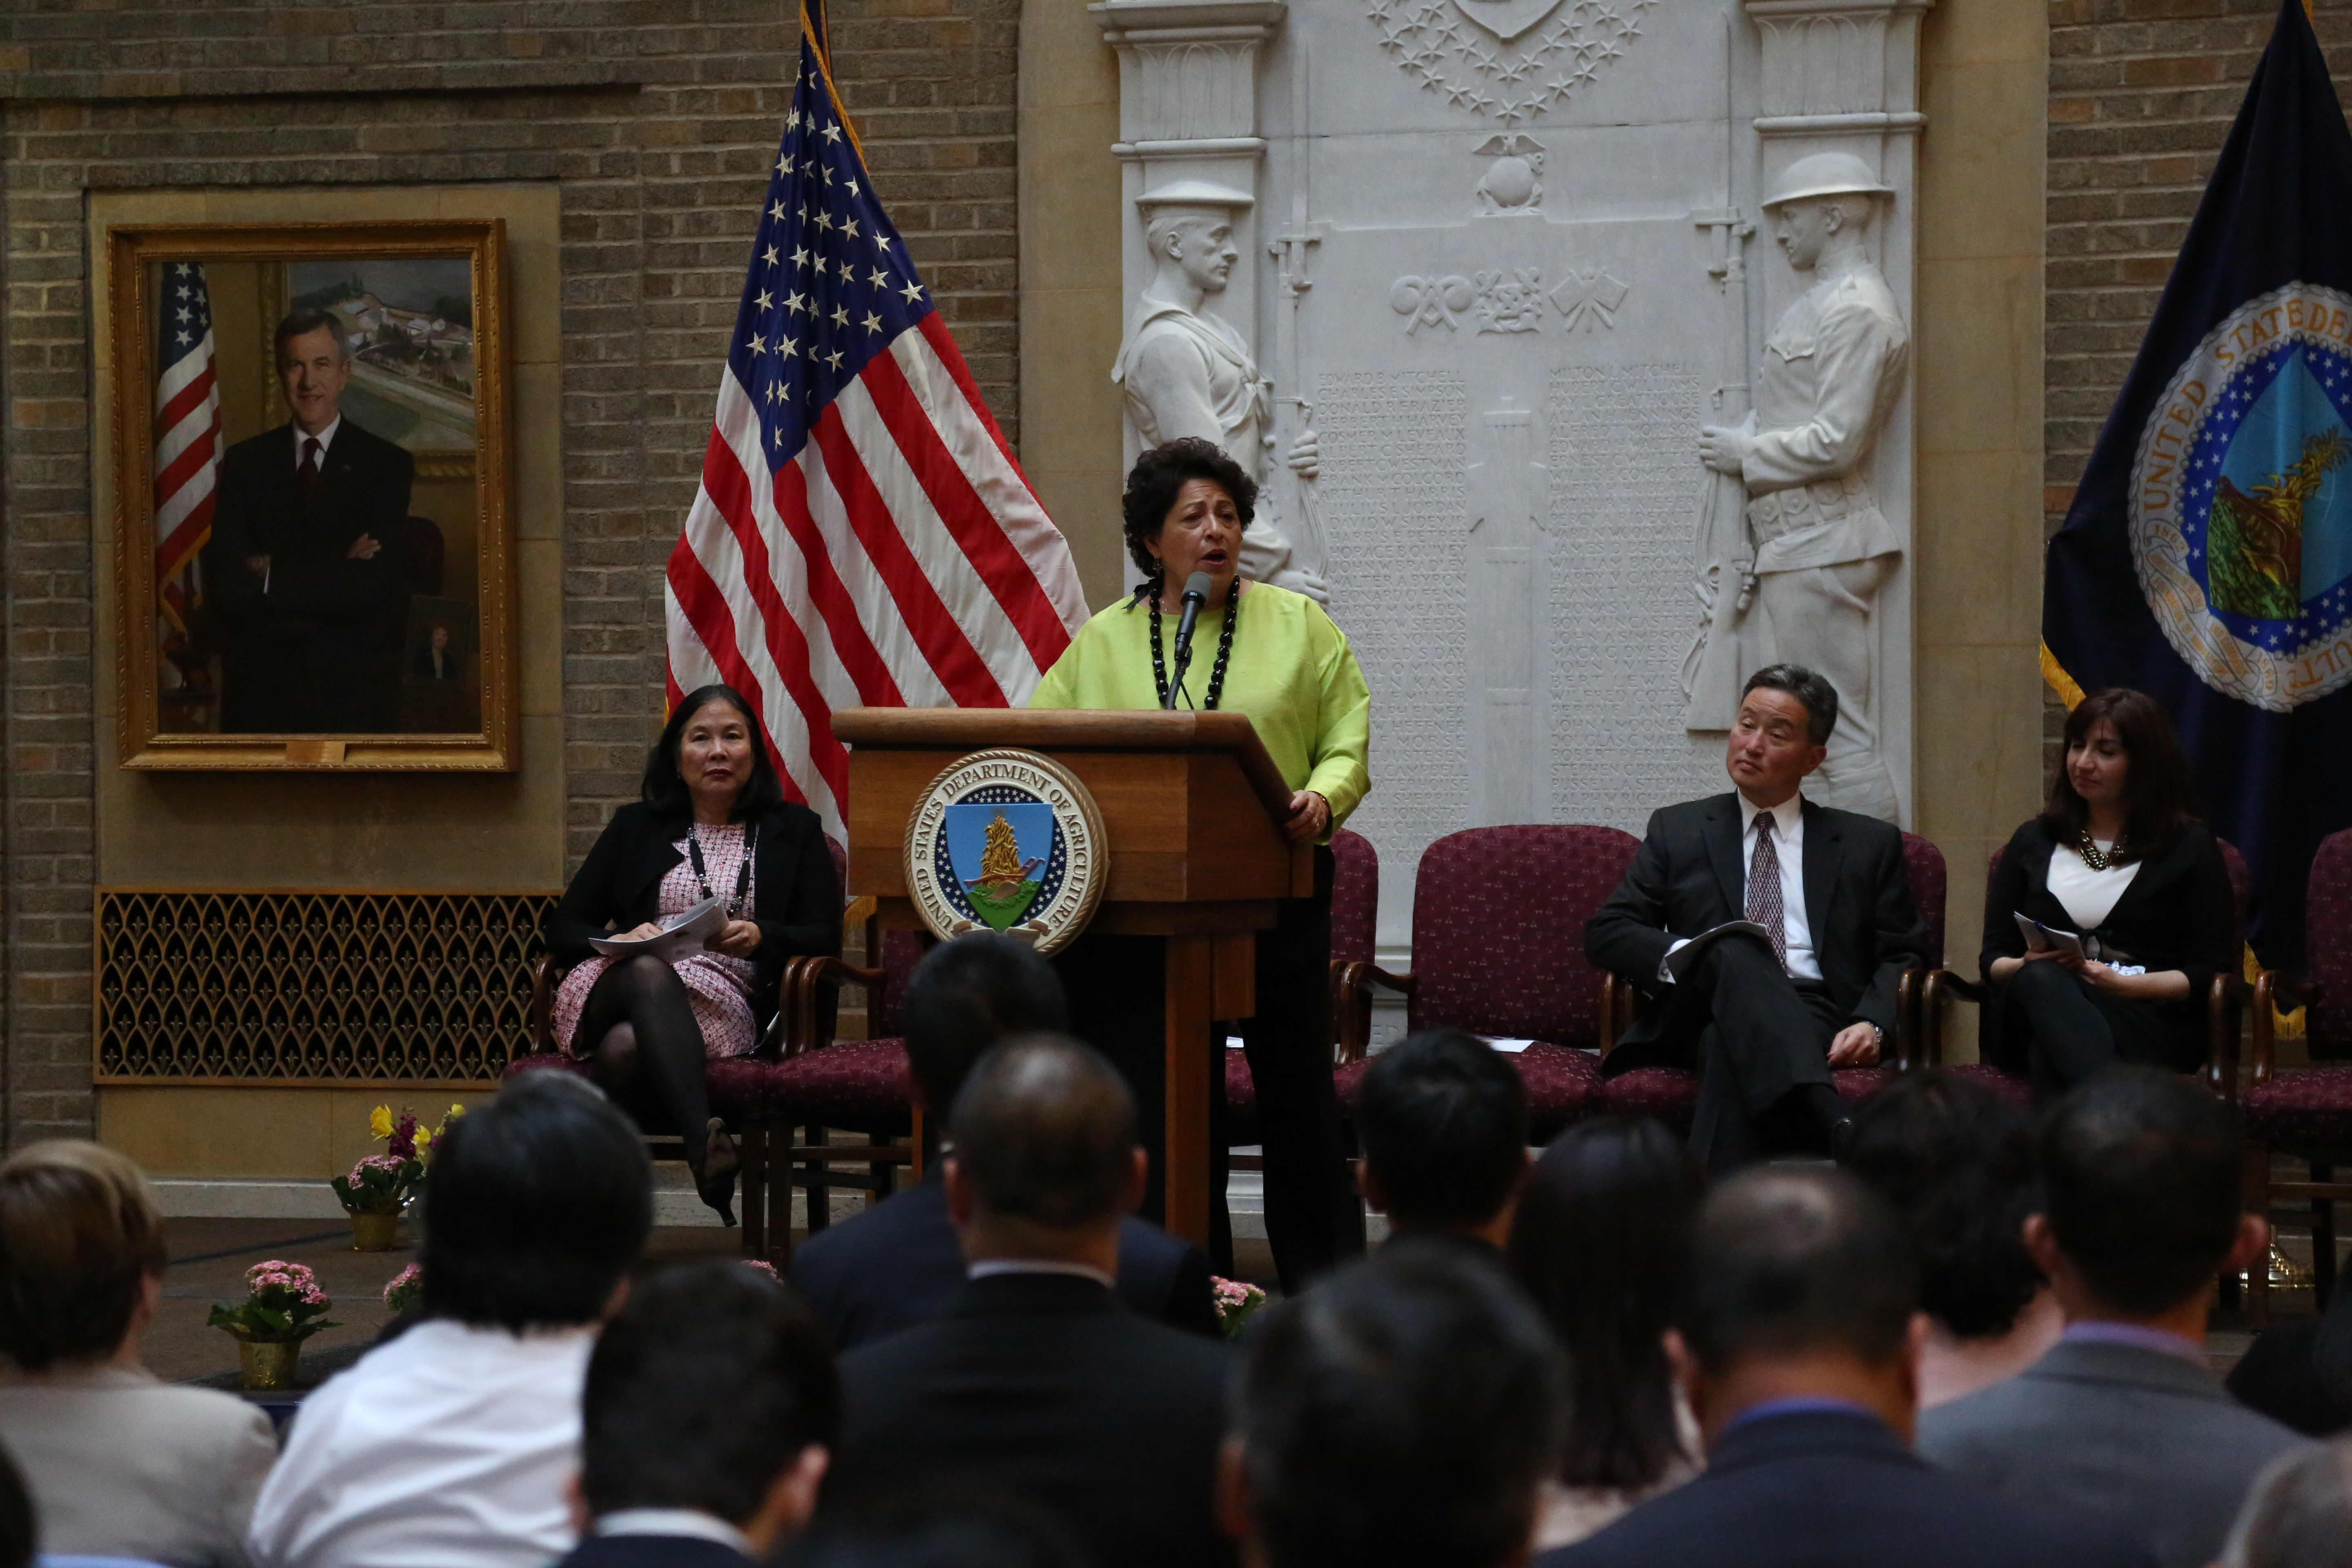 Director Archuleta Speaking on stage at an AAPI event